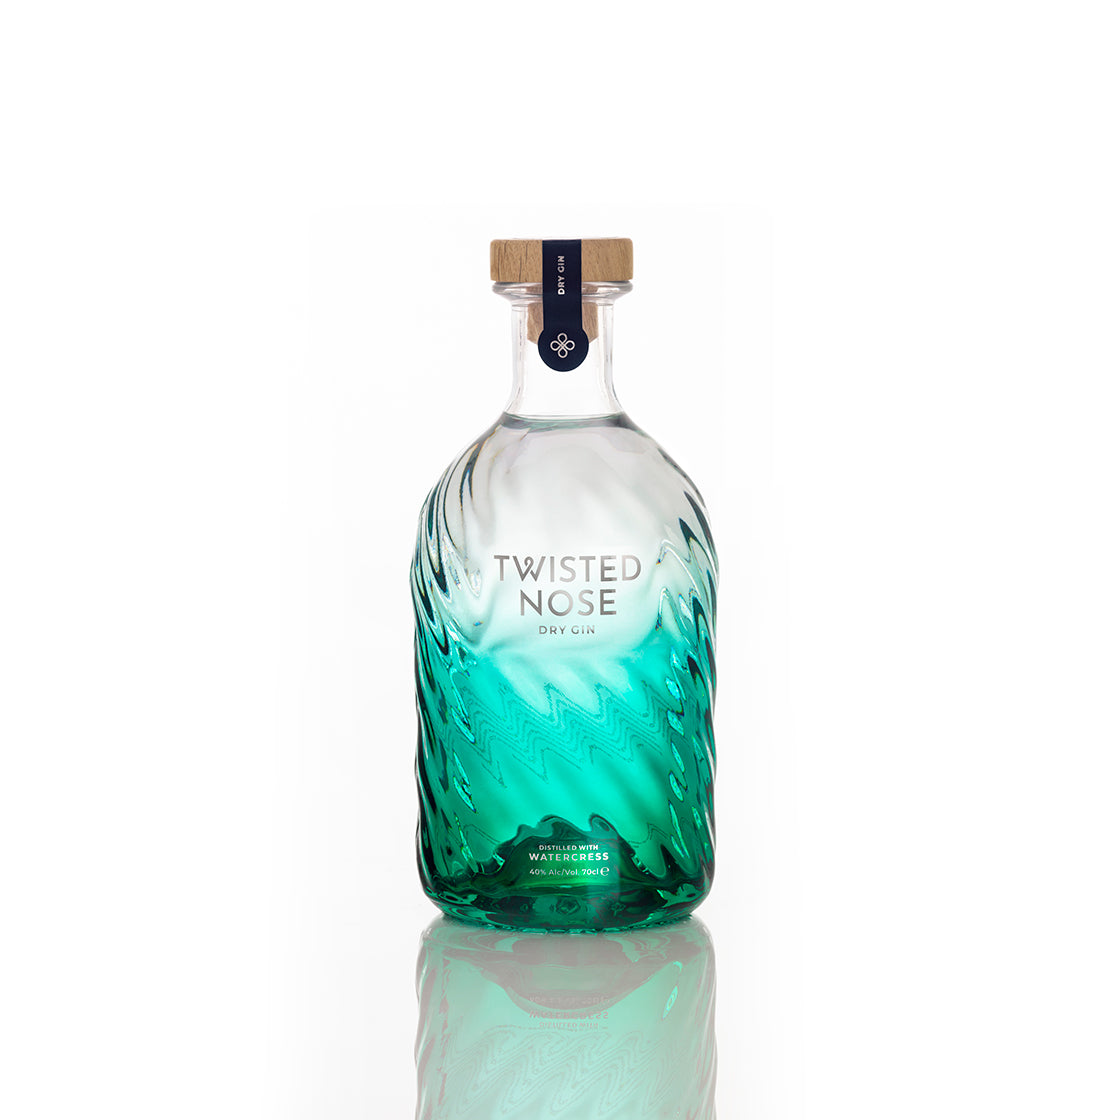 Winchester Twisted Nose, 700ml